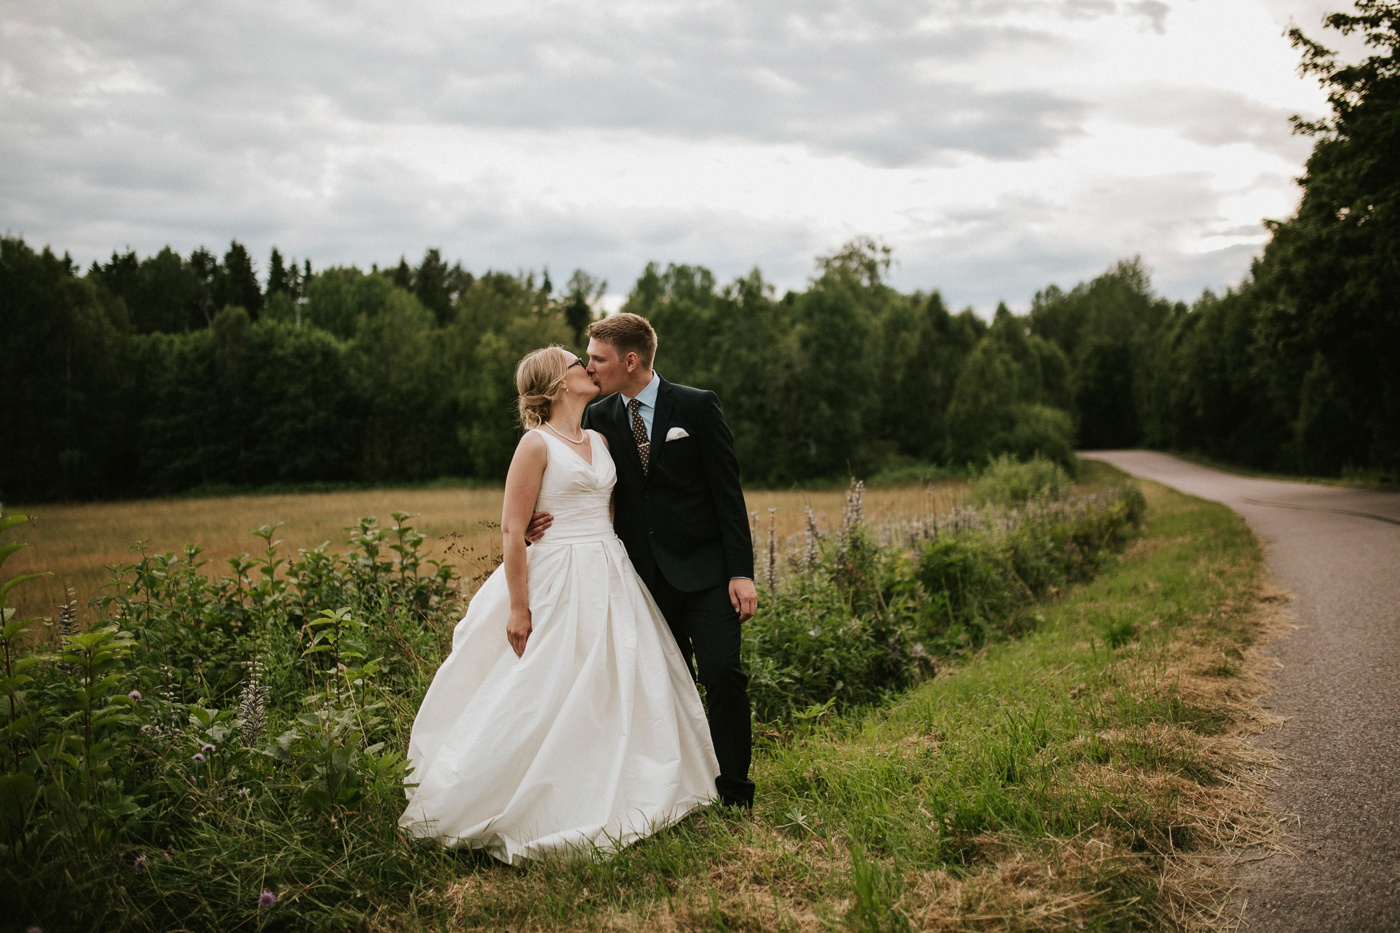 ceciliajoakim_sweden-countryside-summer-wedding_melbourne-fun-quirky-wedding-photography_89